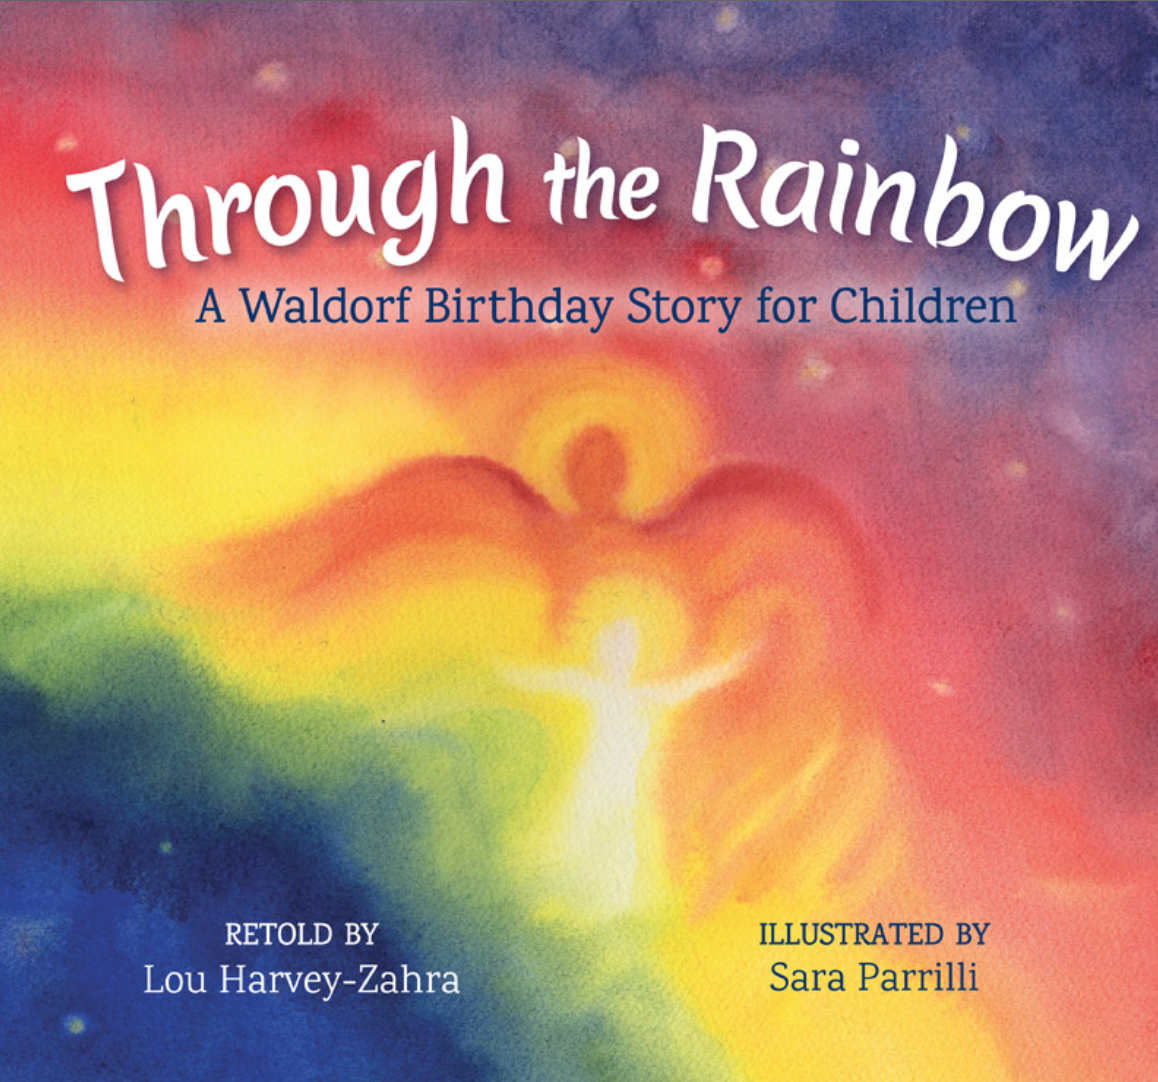 Through the Rainbow A Waldorf Birthday Story for Children - Floris Books